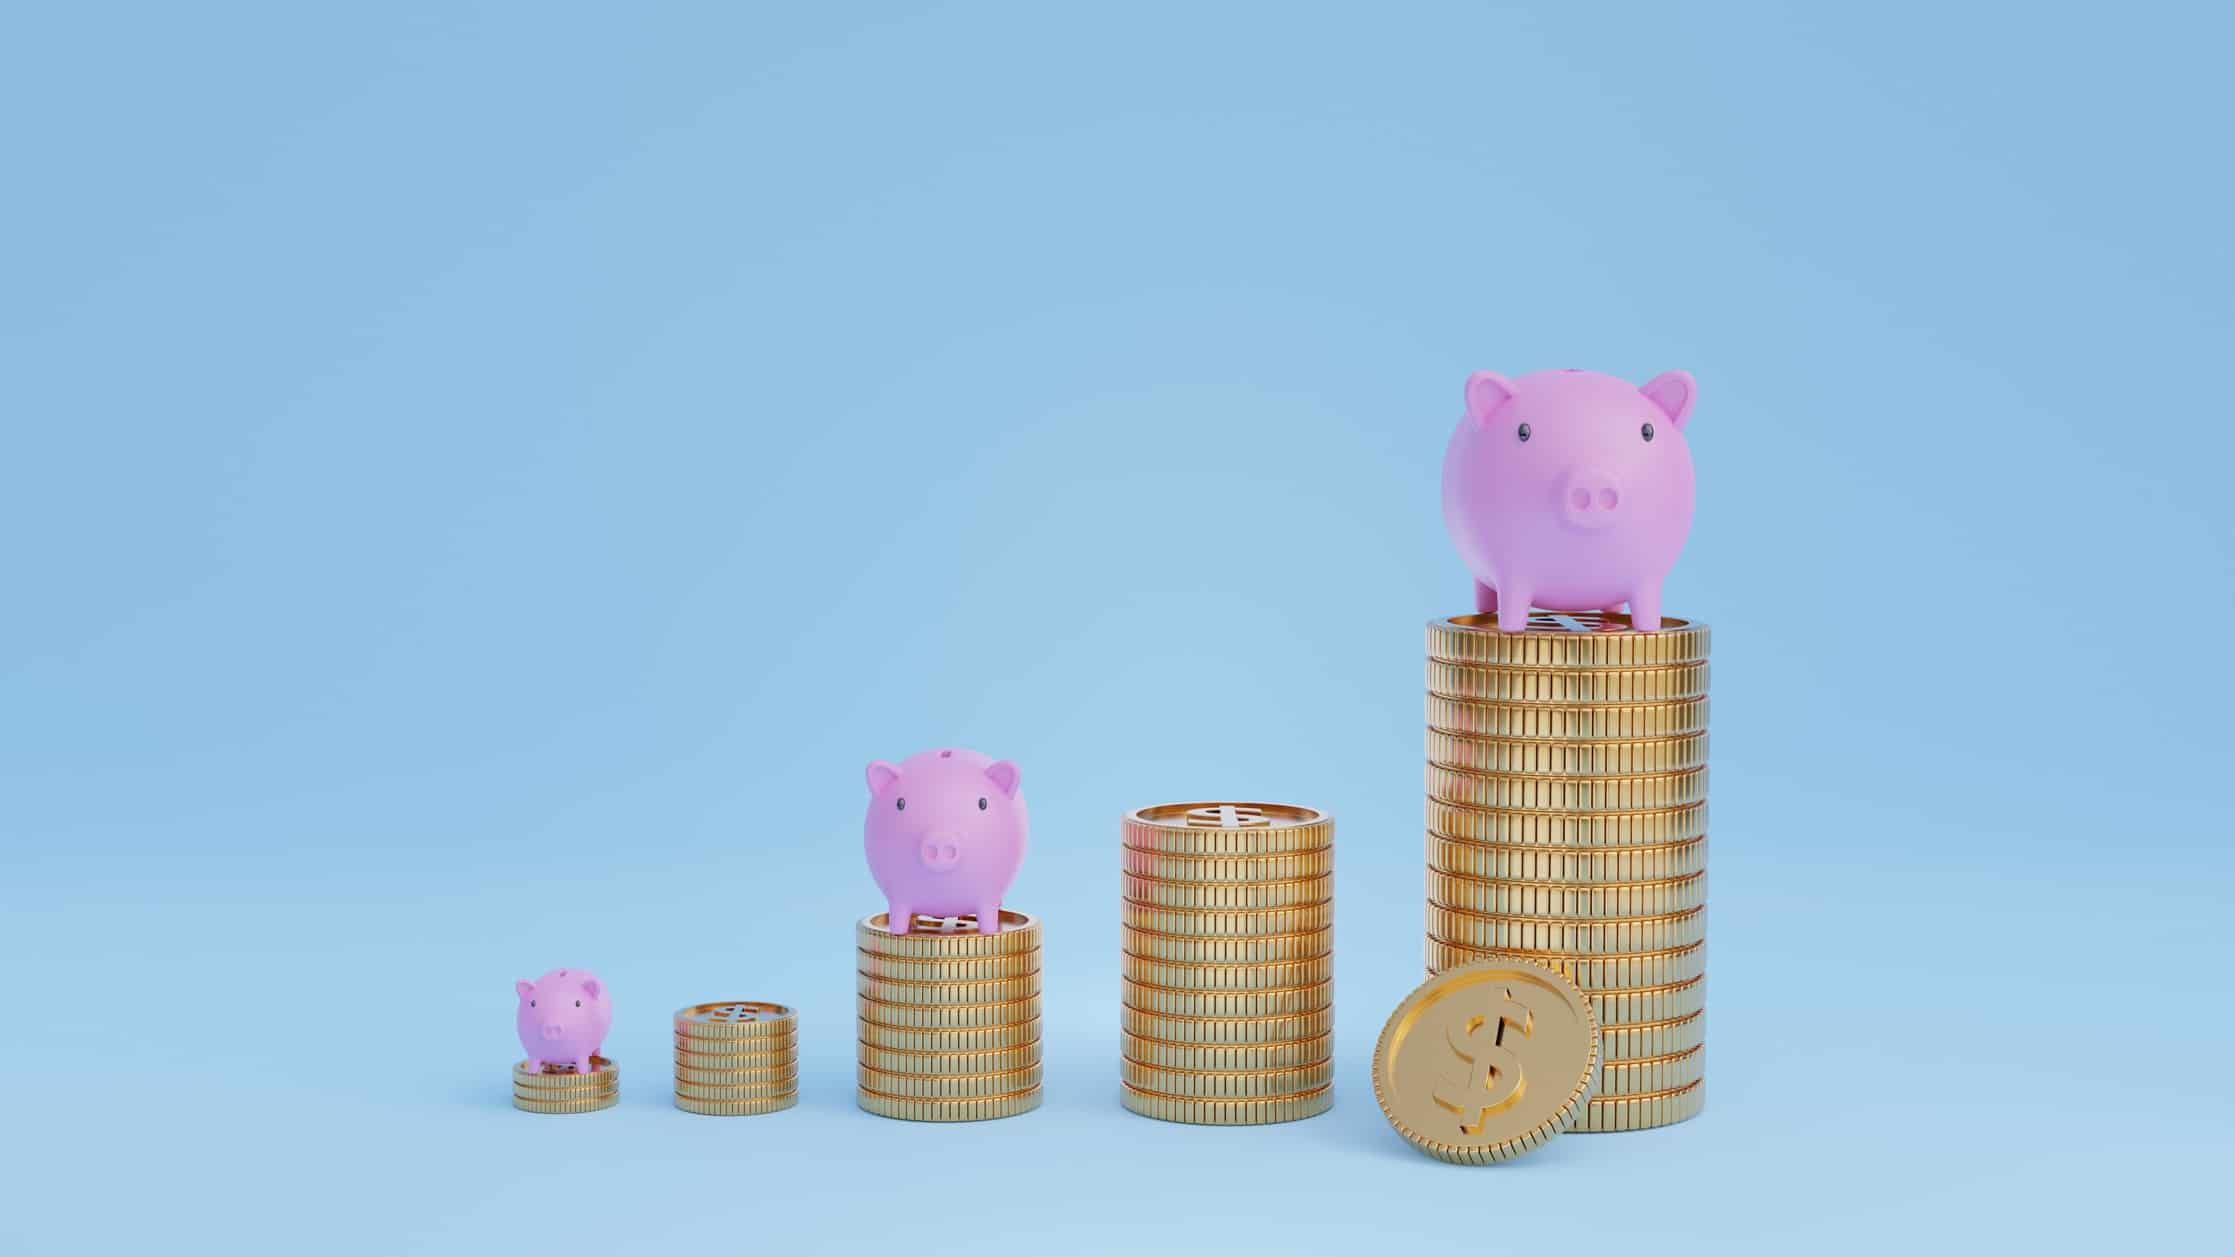 piles of coins increasing in height with miniature piggy banks on top